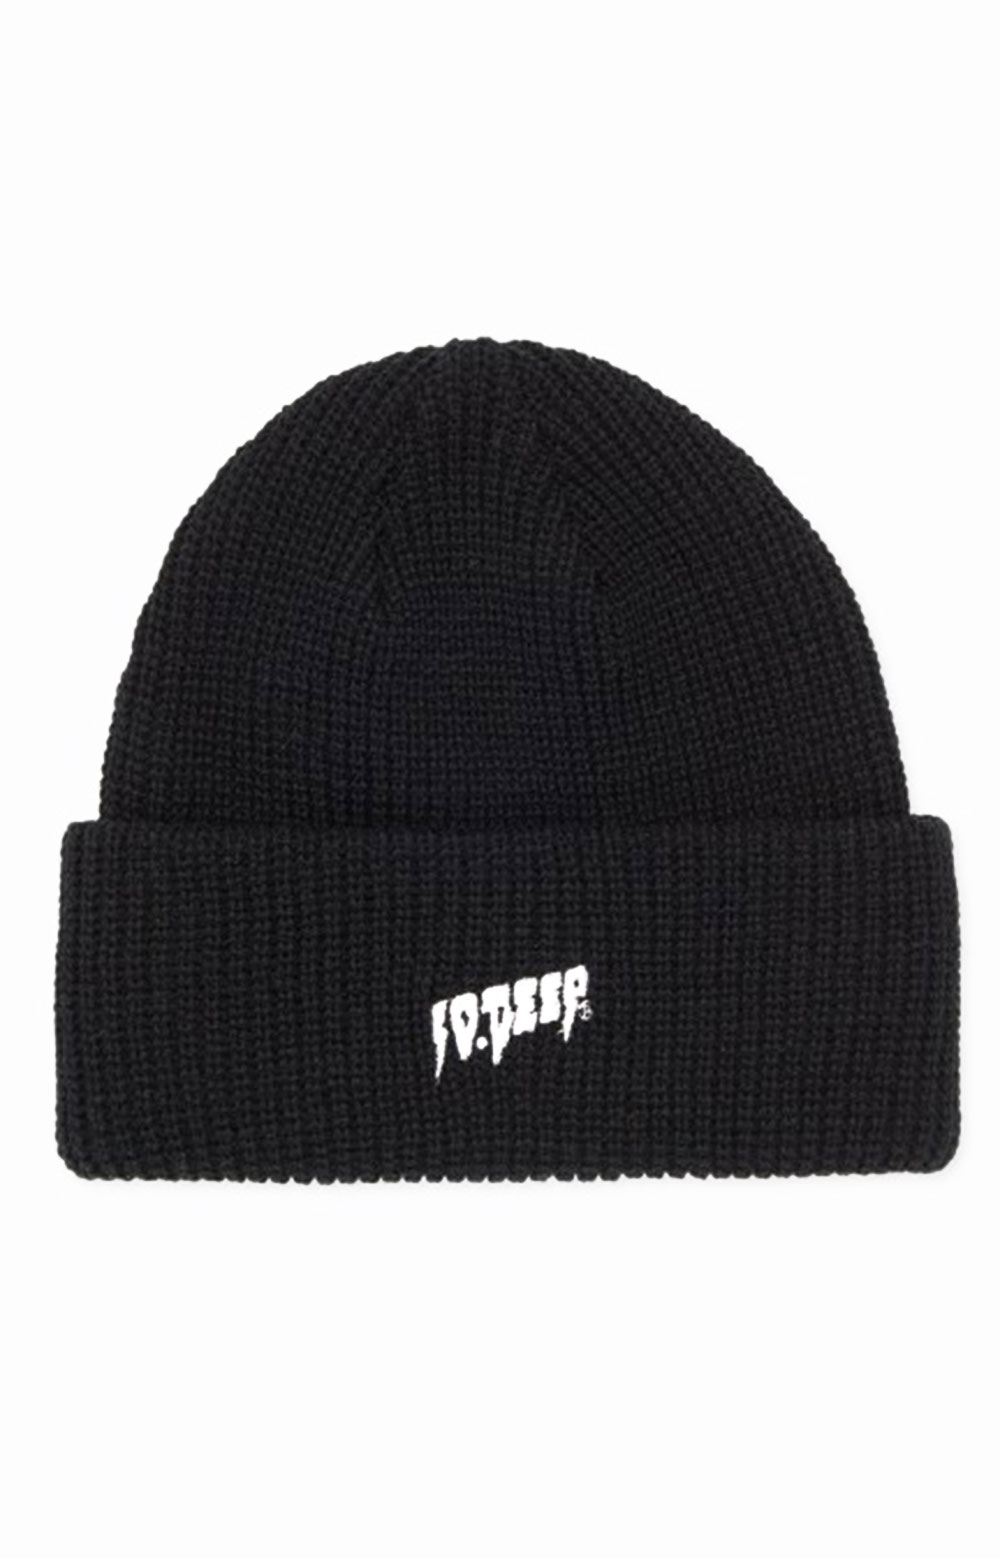 Sound & Fury Beanie - Black